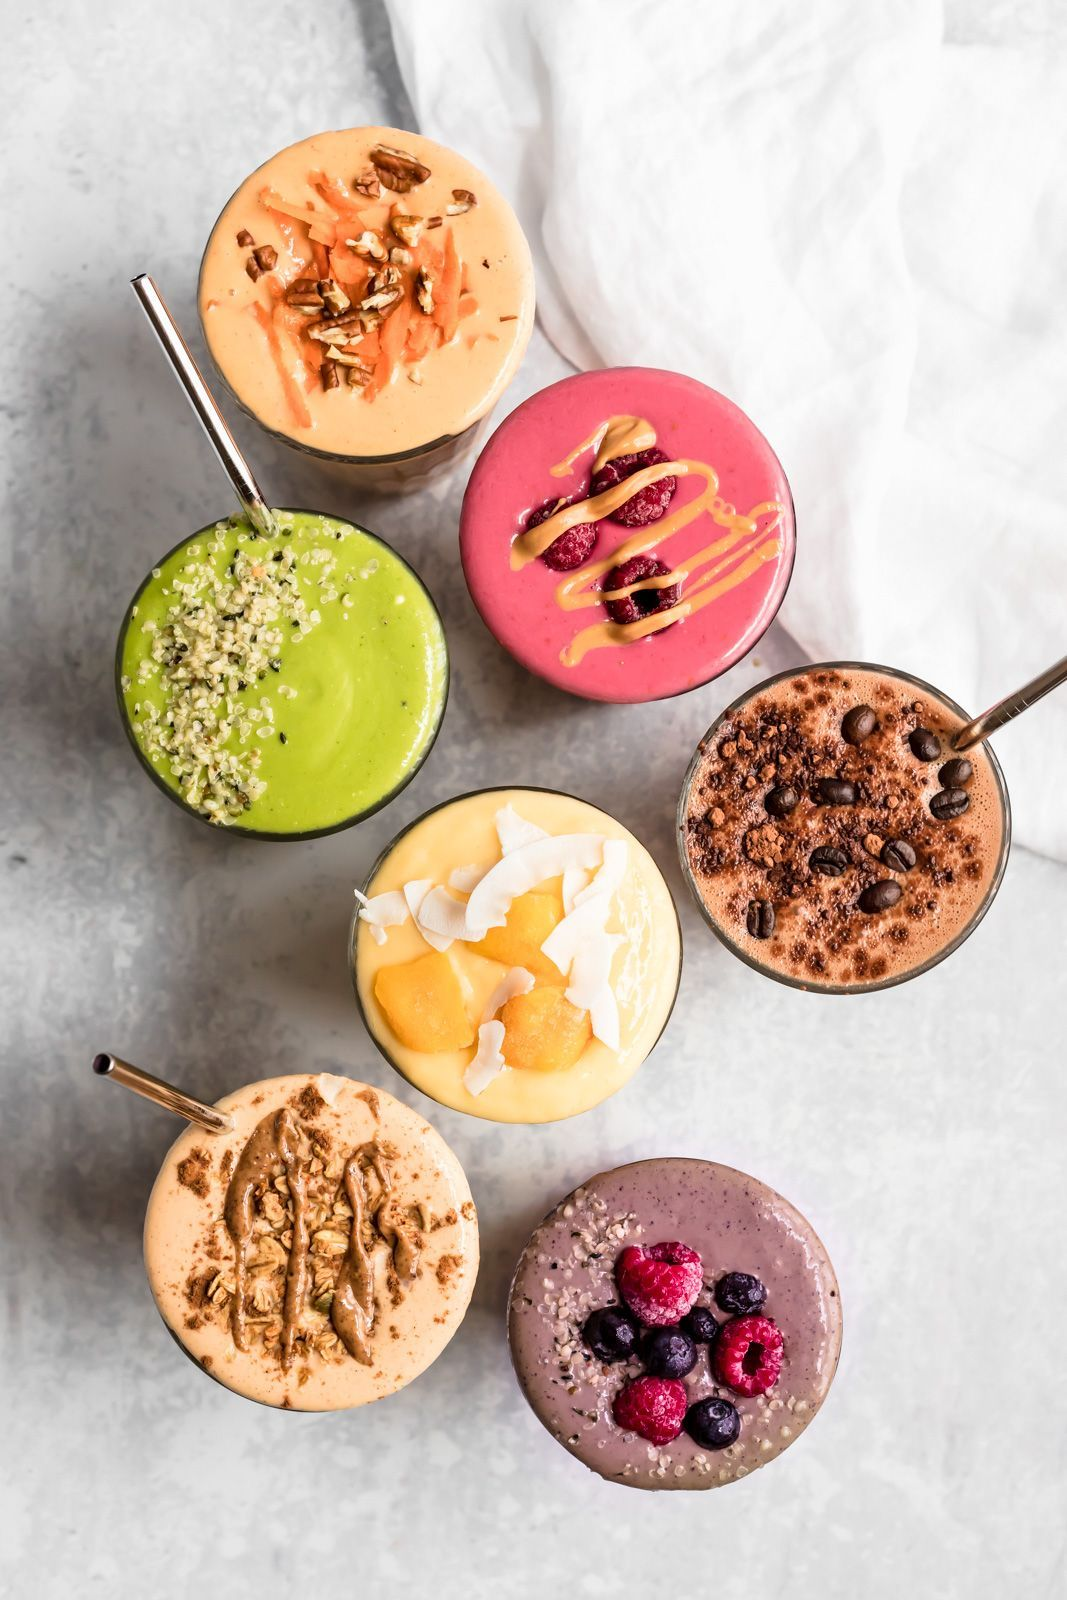 Sign me up for smoothies! There's something for everyone in this smoothie recipe roundup from @ambitiouskitchen, plus they're all super easy to make! #healthyrecipes #foodblogger #recipes #smoothierecipes